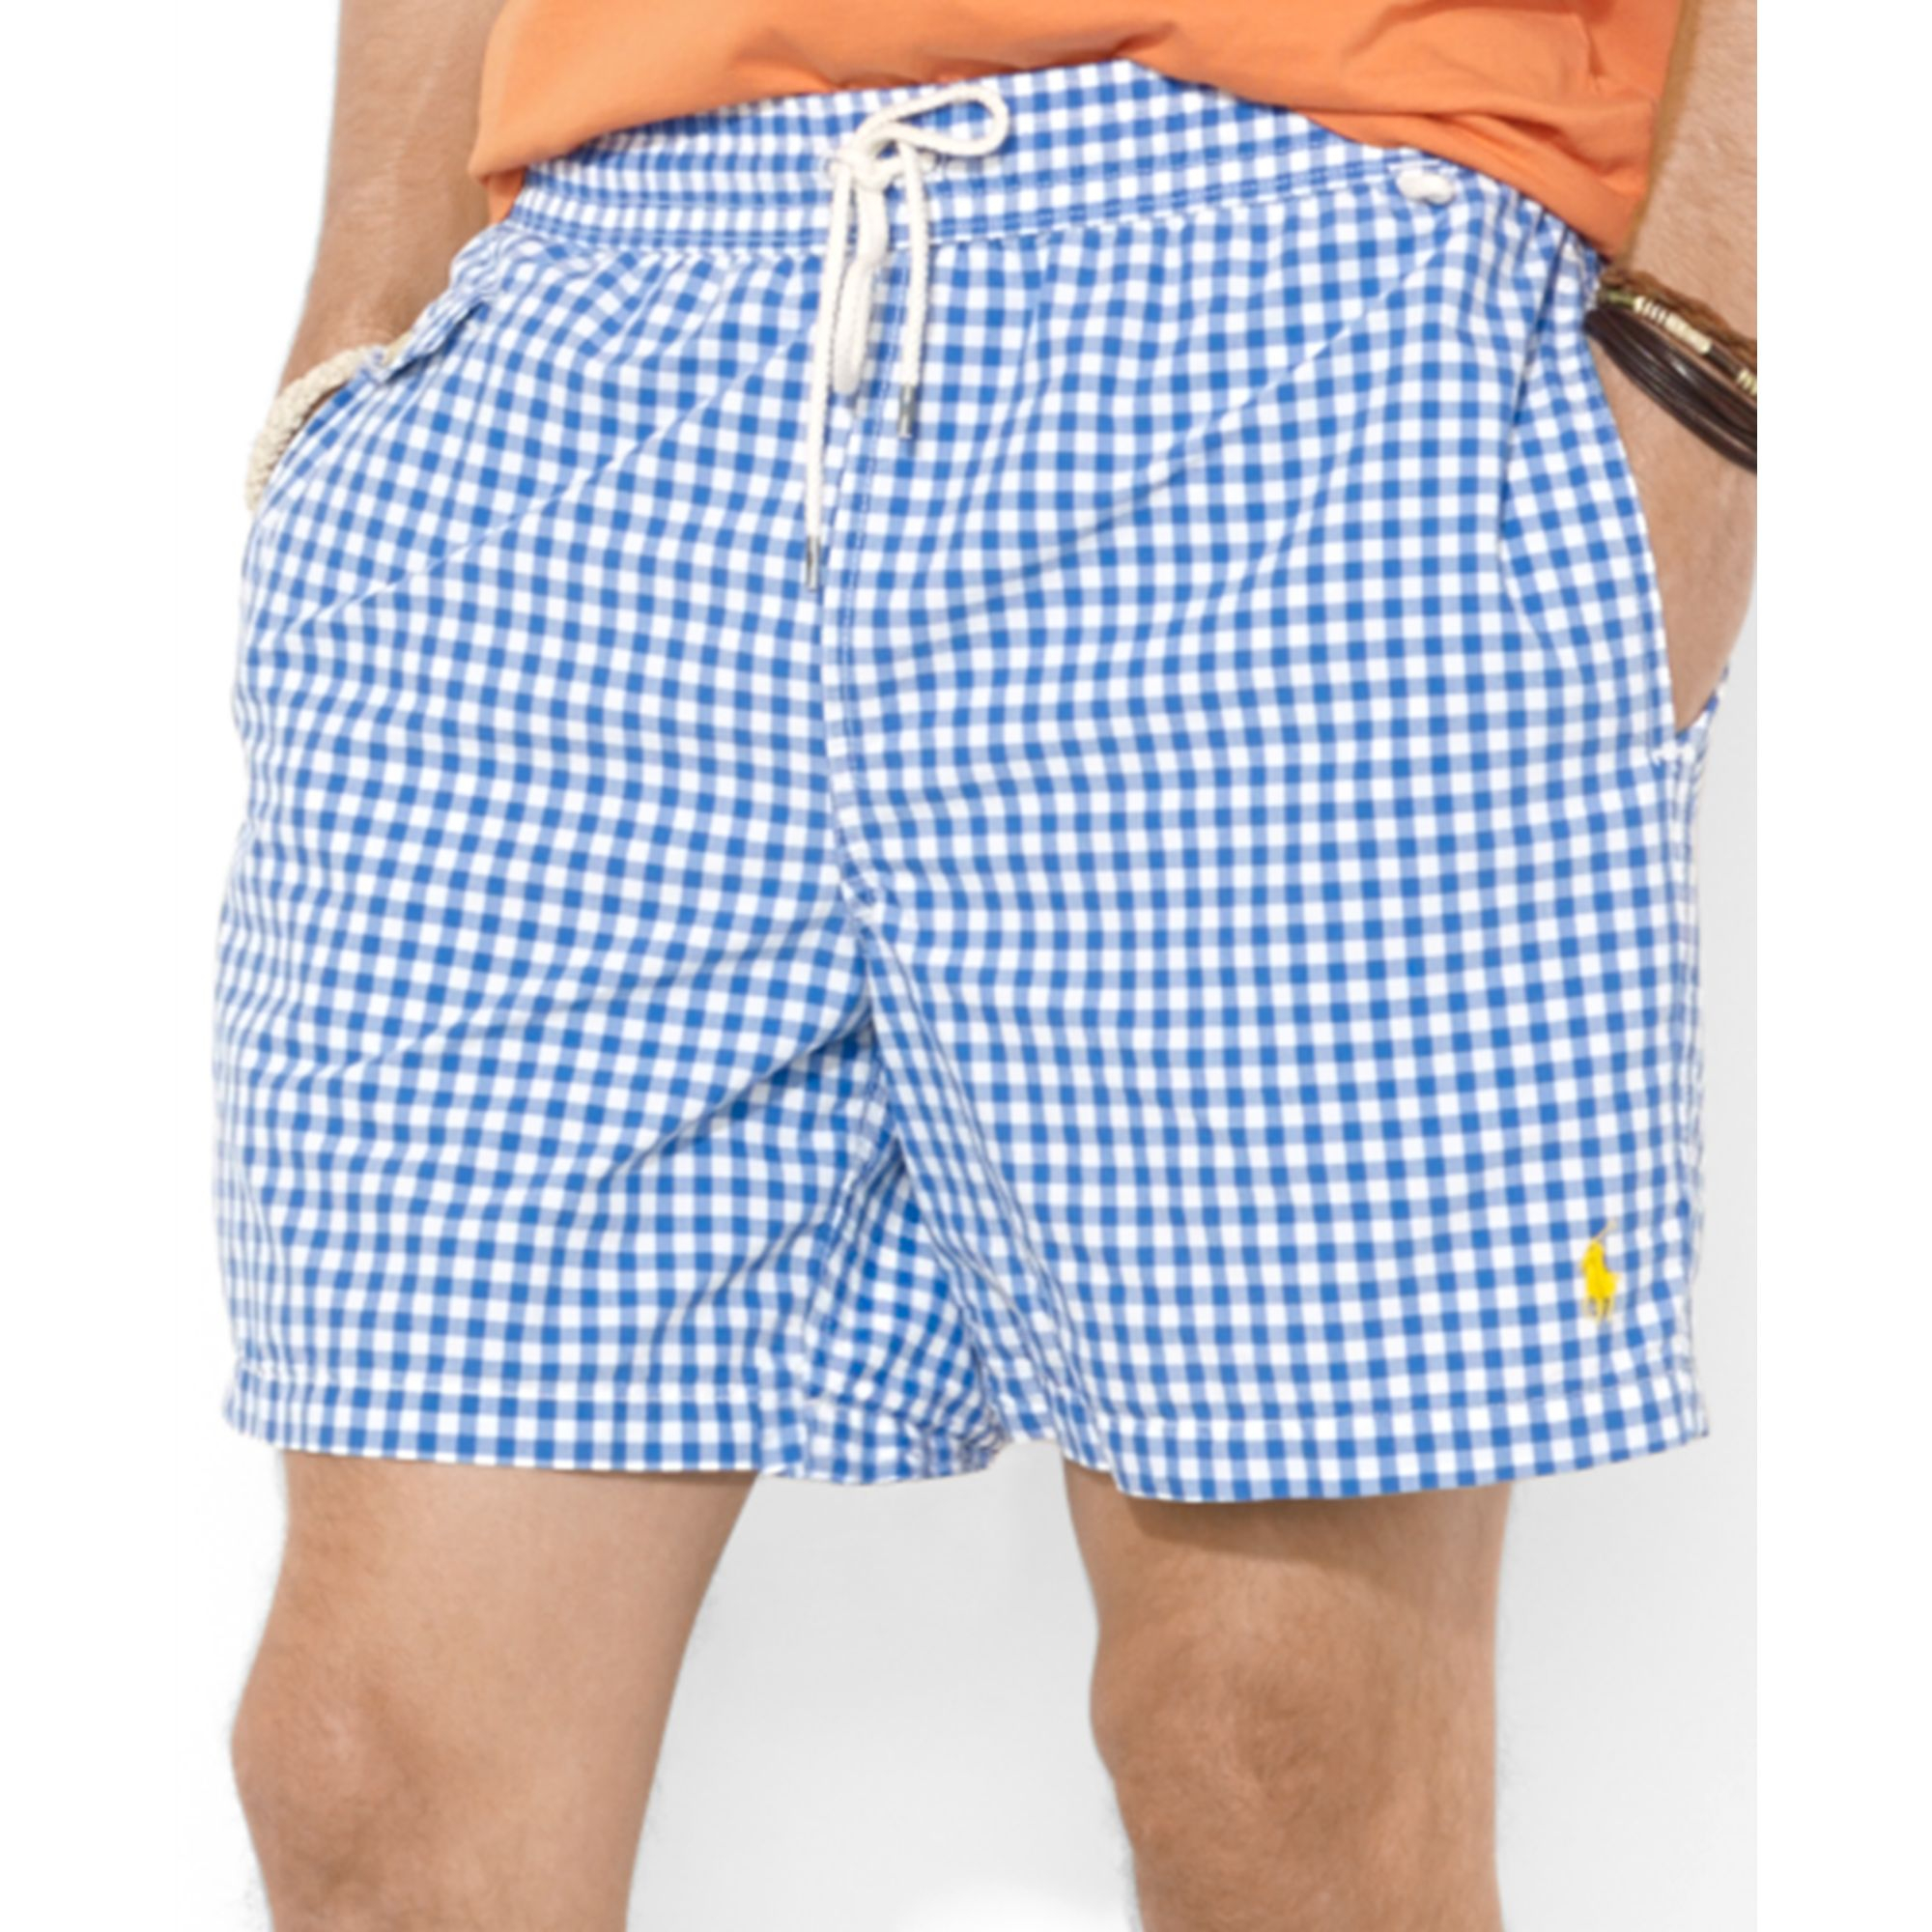 591df9d0ca spain men swimwear polo ralph lauren anchor print swimshorts snujuo f8c2f  271e9; new zealand lyst polo ralph lauren traveler checked swim shorts in  blue for ...